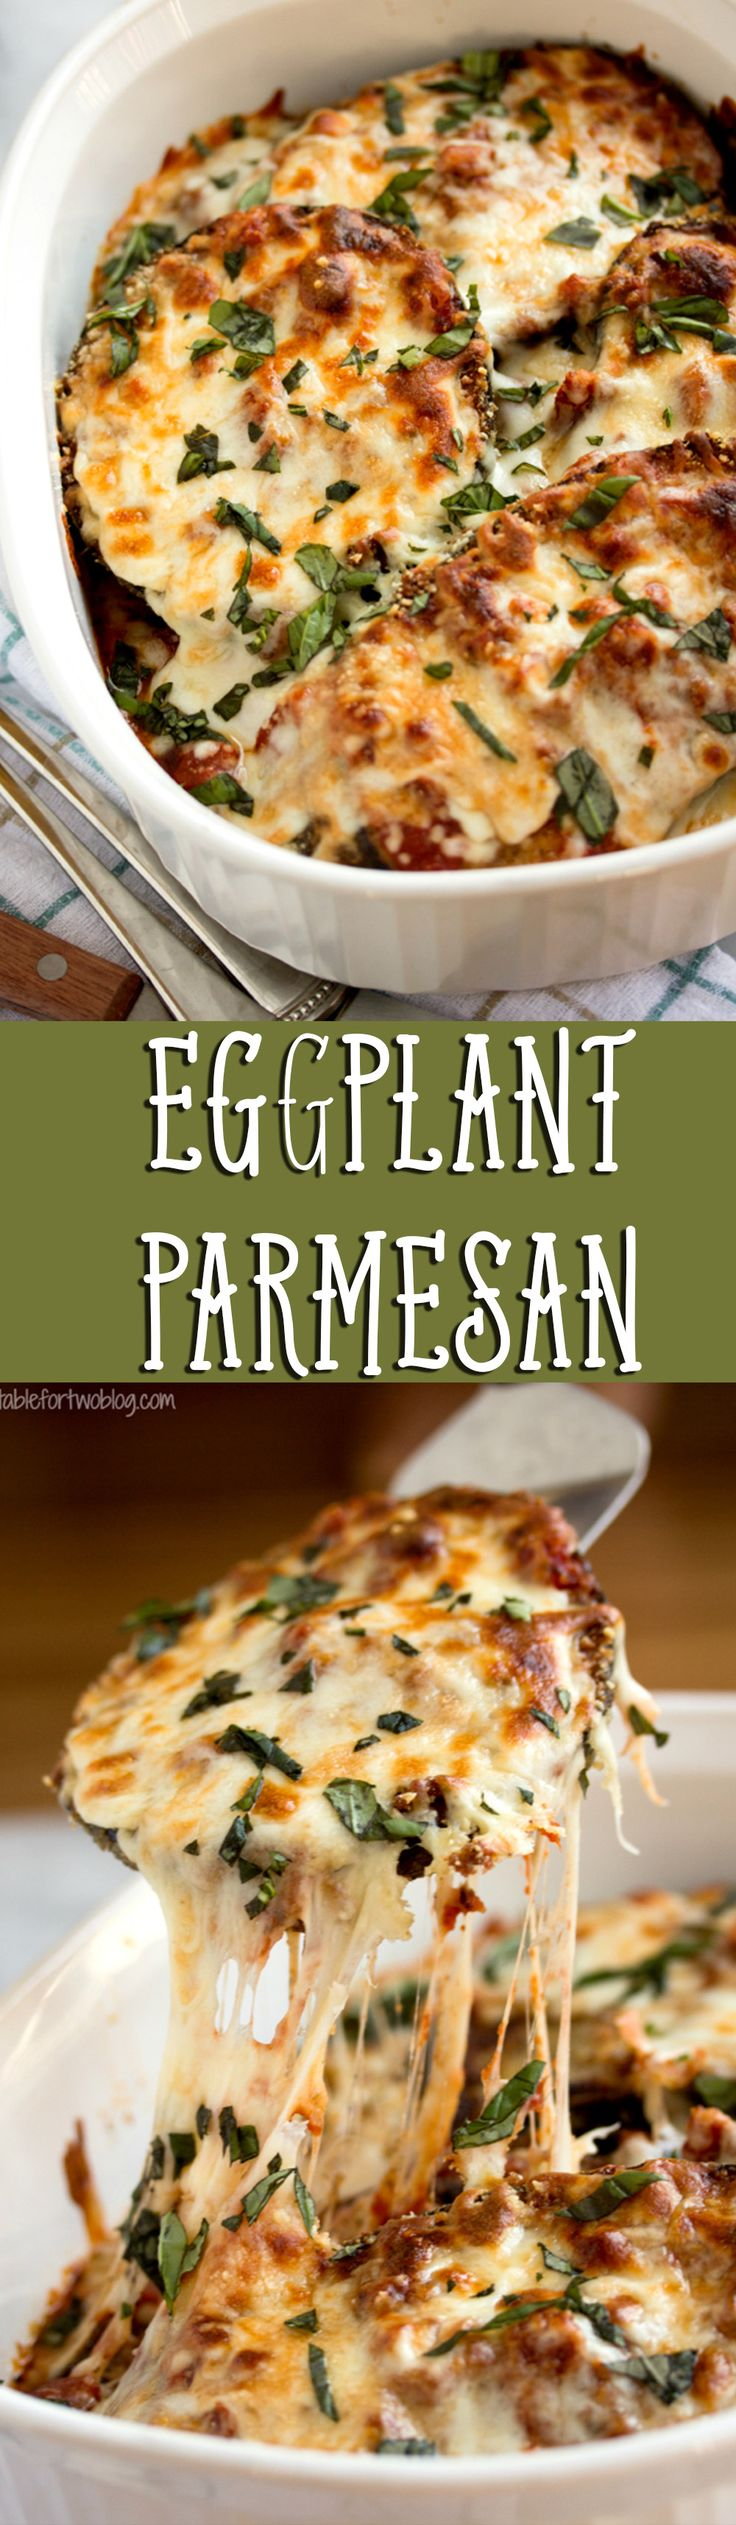 Our all-time FAVORITE way to make eggplant parm! You will want to make it this way forever!